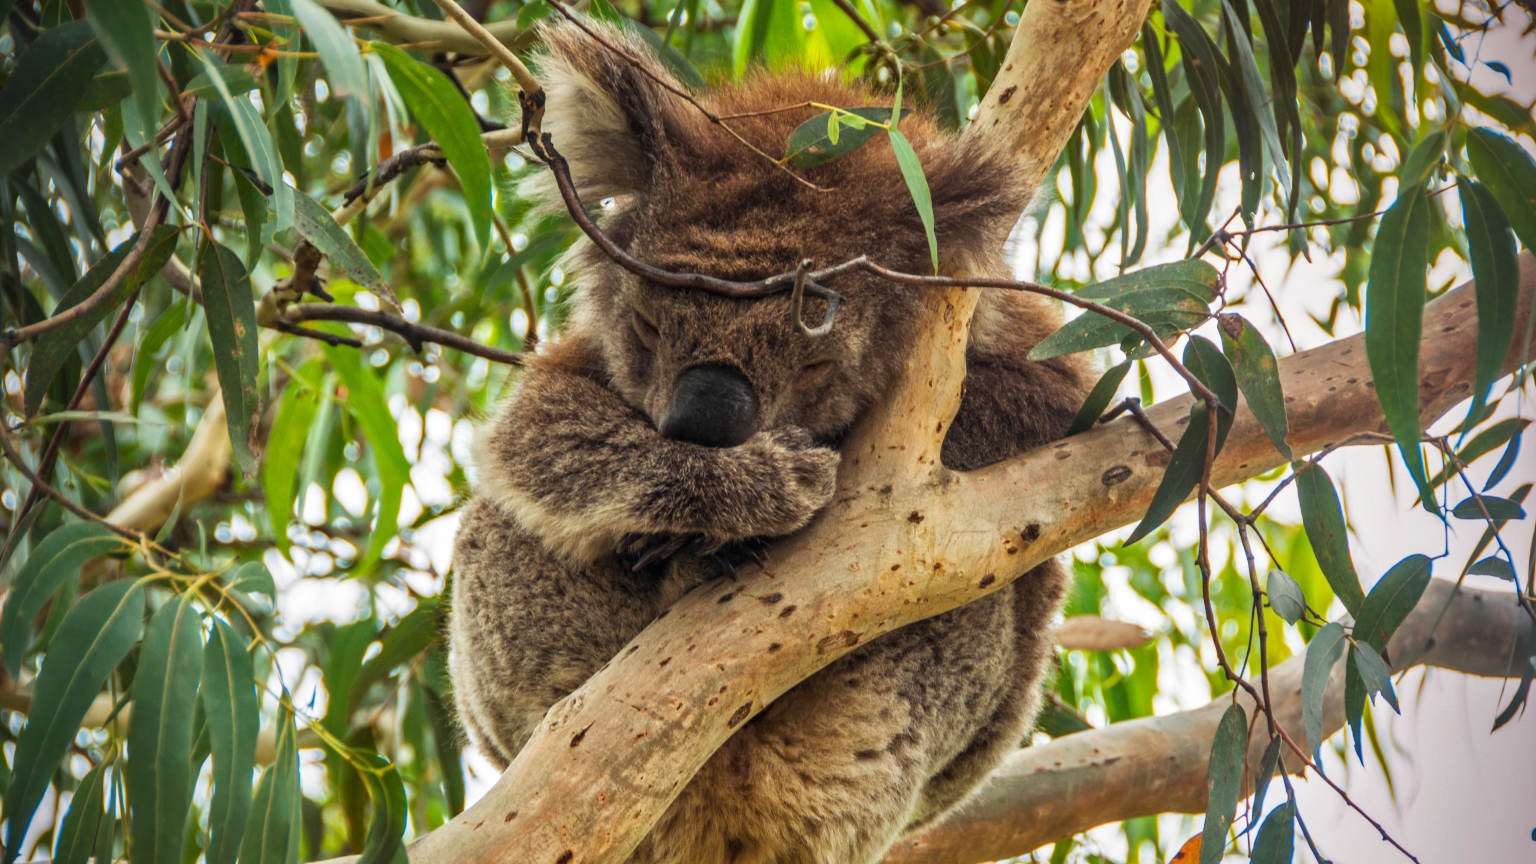 Koalas asleep in the trees near Kennett River, Great Ocean Road.